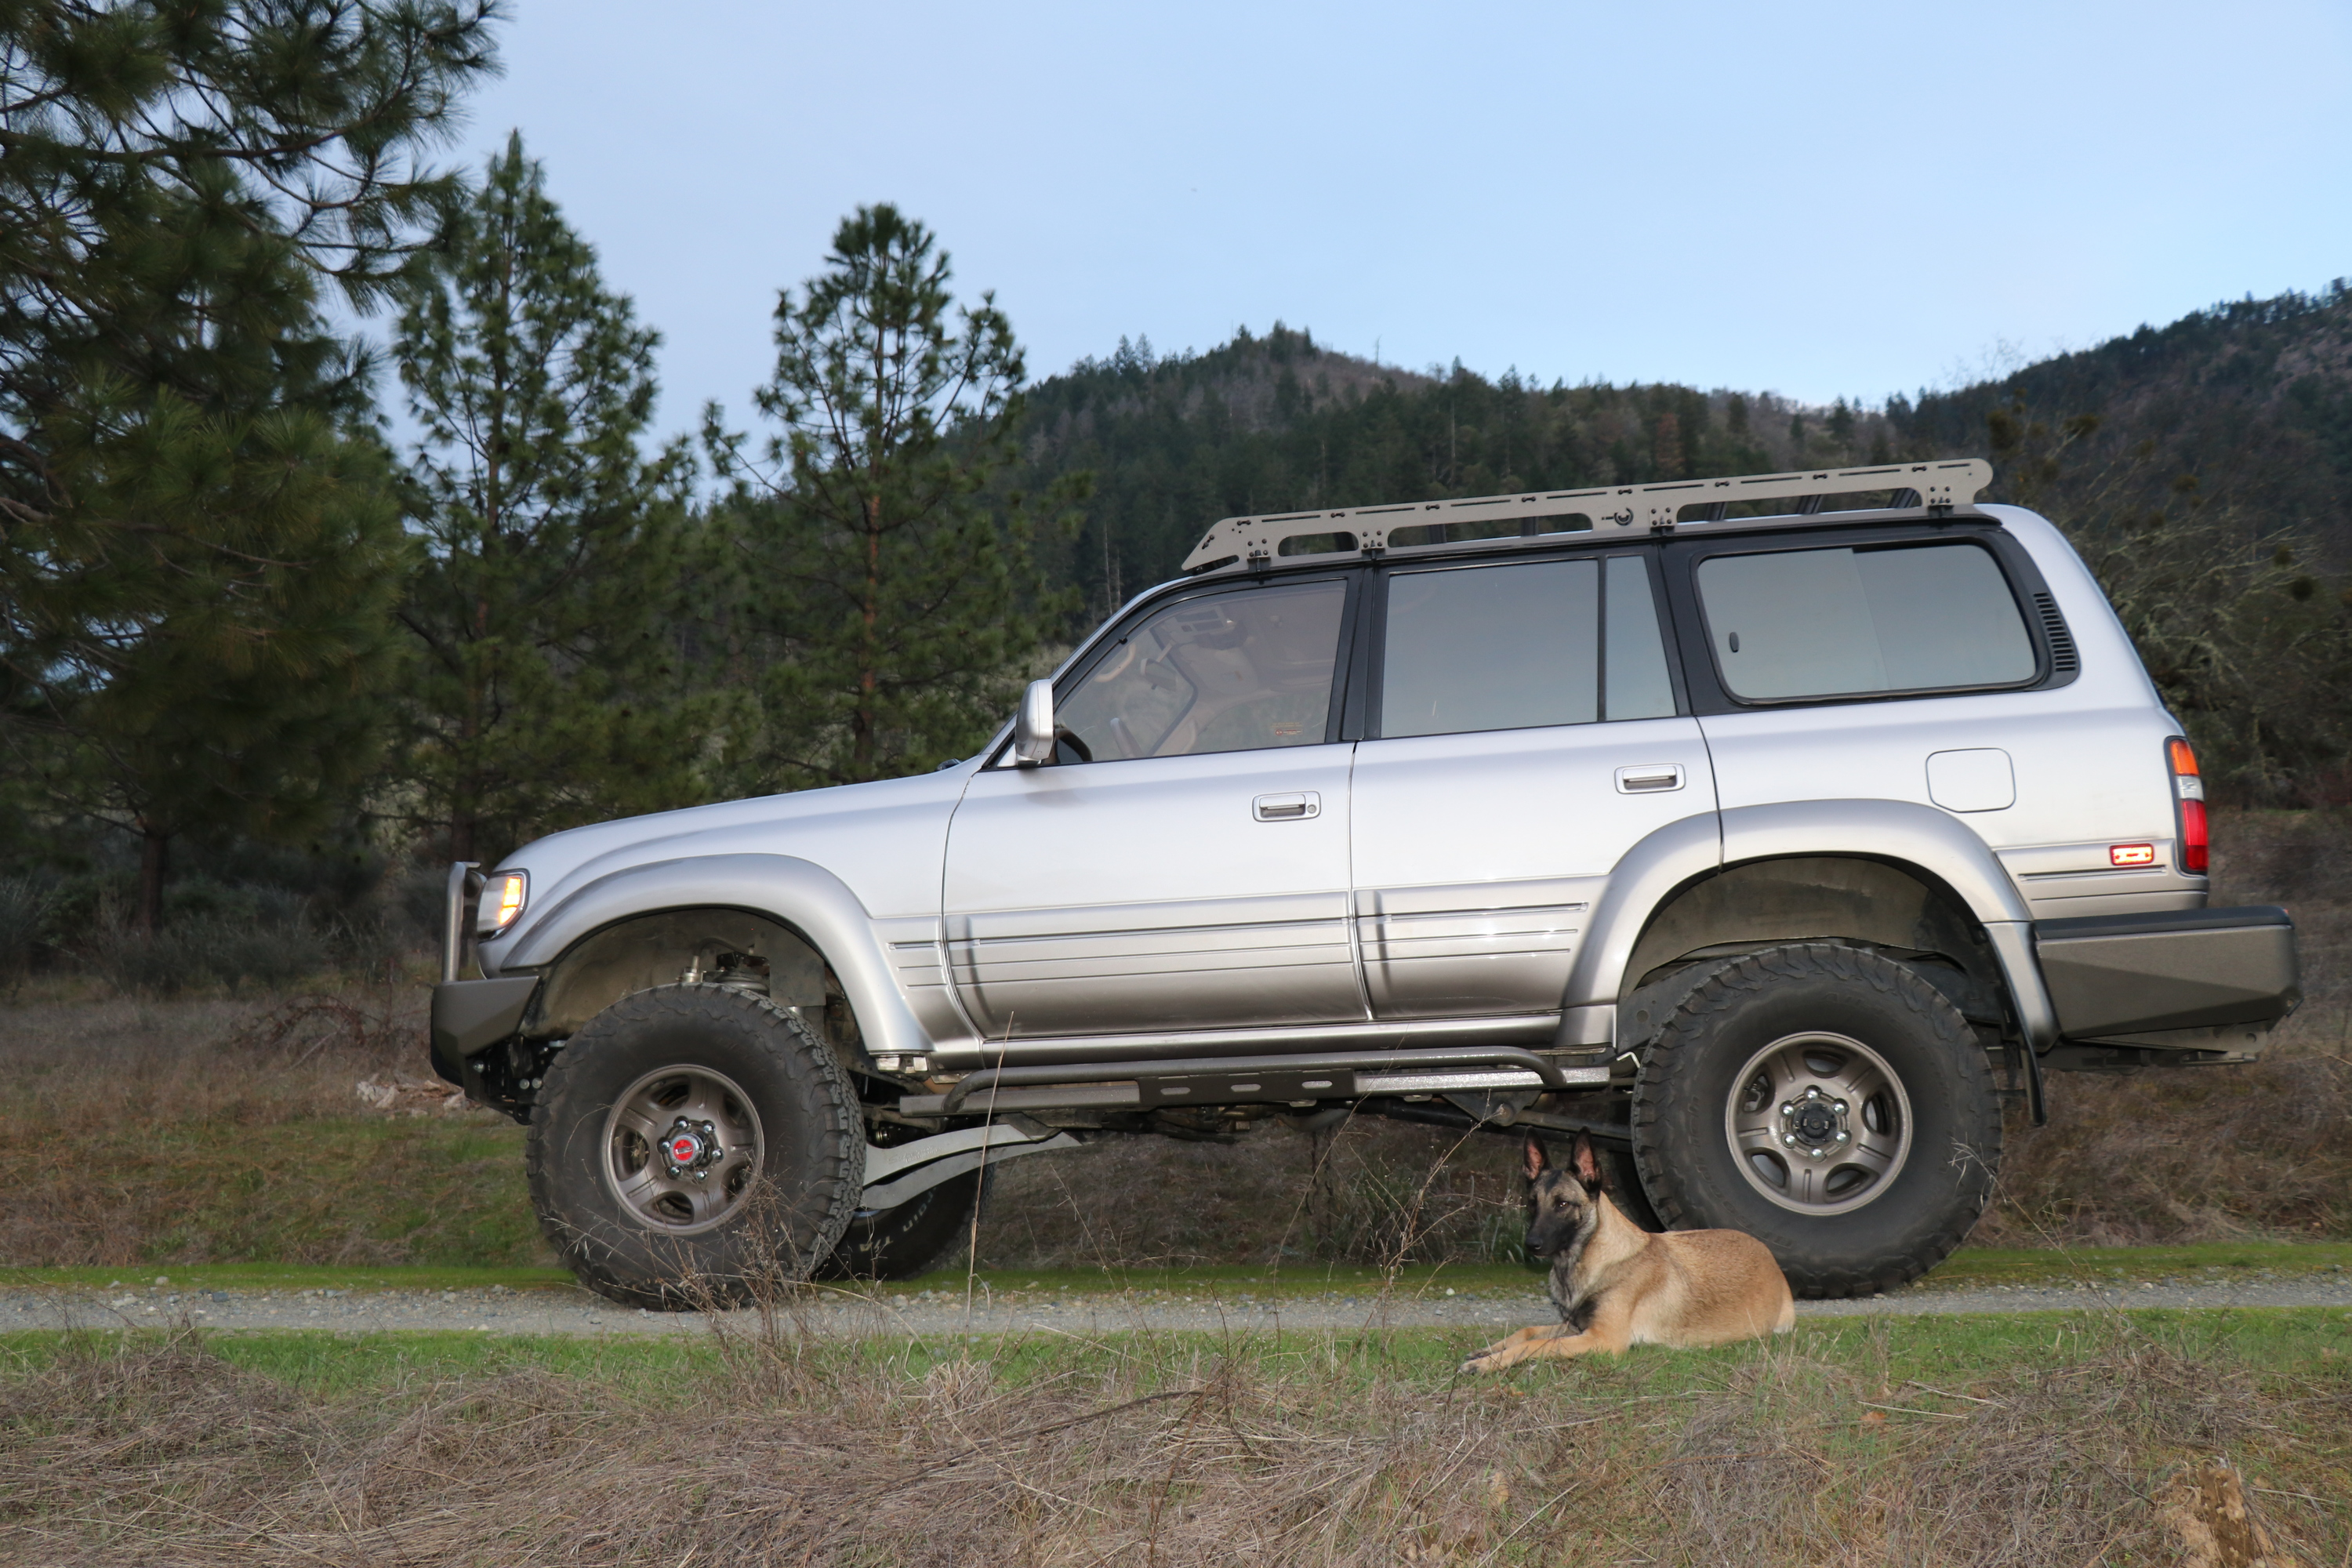 Any ballers in need of a Badass Supercharged Landcruiser ...